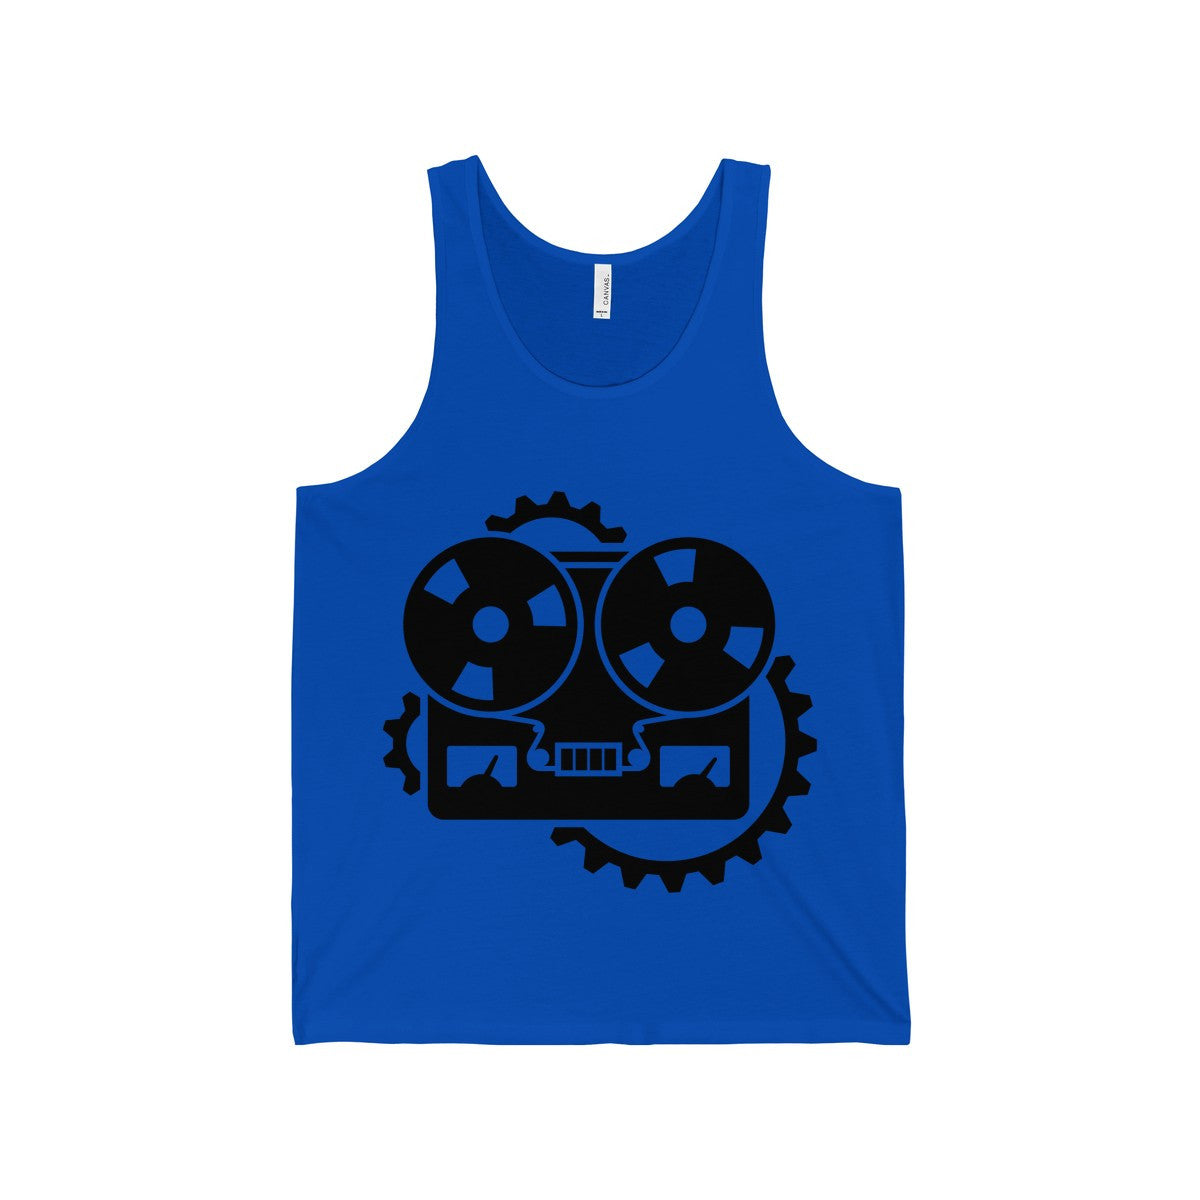 URM Tape Machine Tank, Black Print